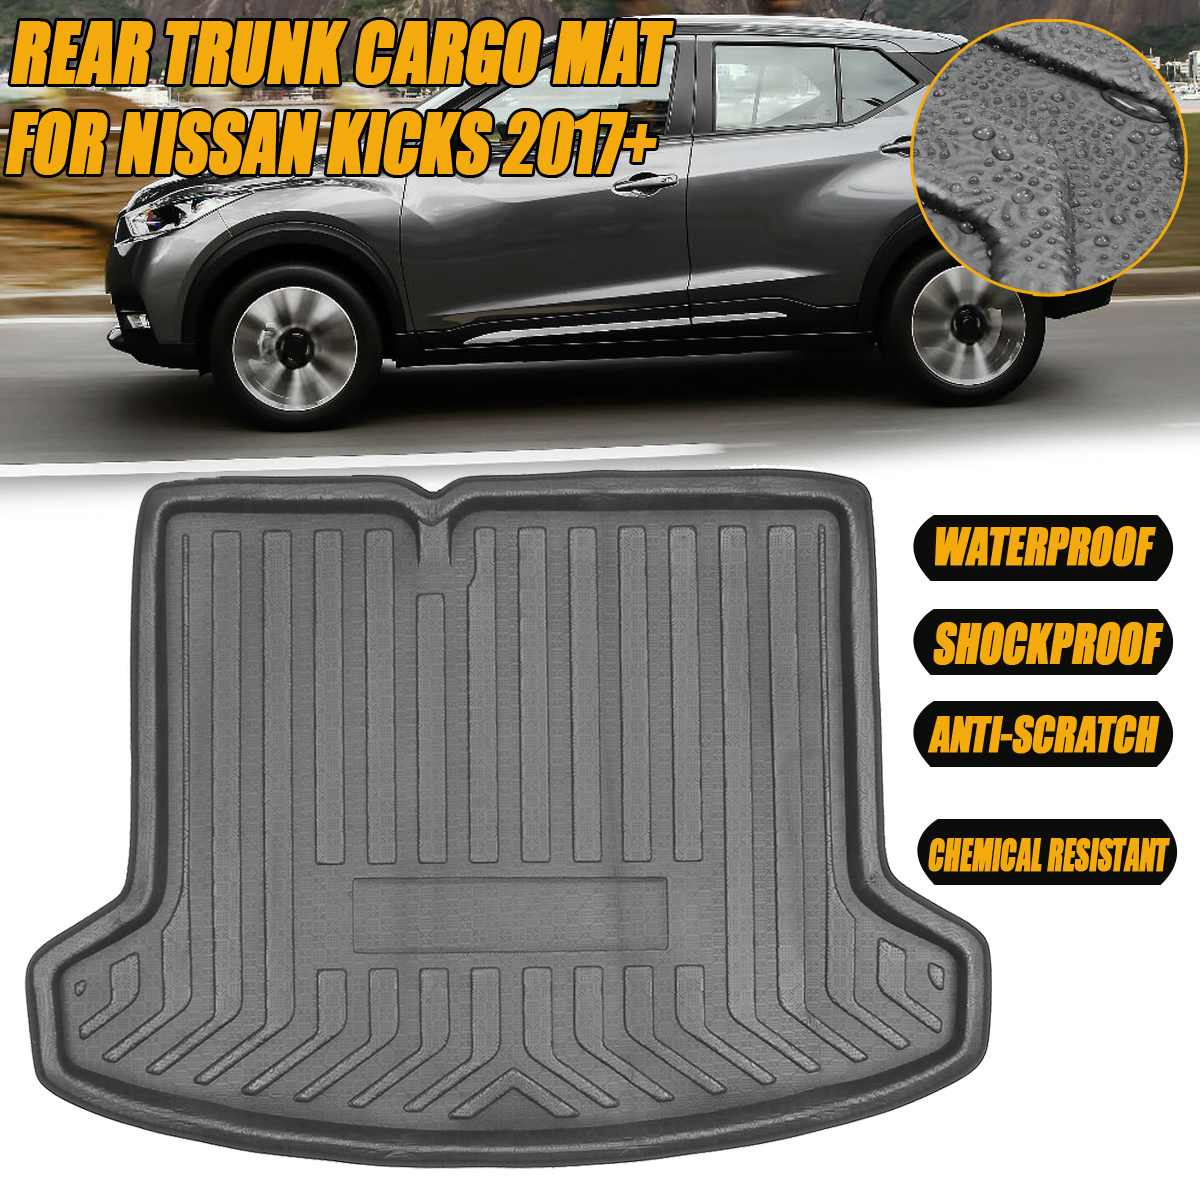 1PC Boot Liner Tray Rear Trunk Cargo Liner Mat For Nissan Kicks 2017 2018 2019 2020+ Floor Sheet Carpet Tray Waterproof Antislip|  - title=